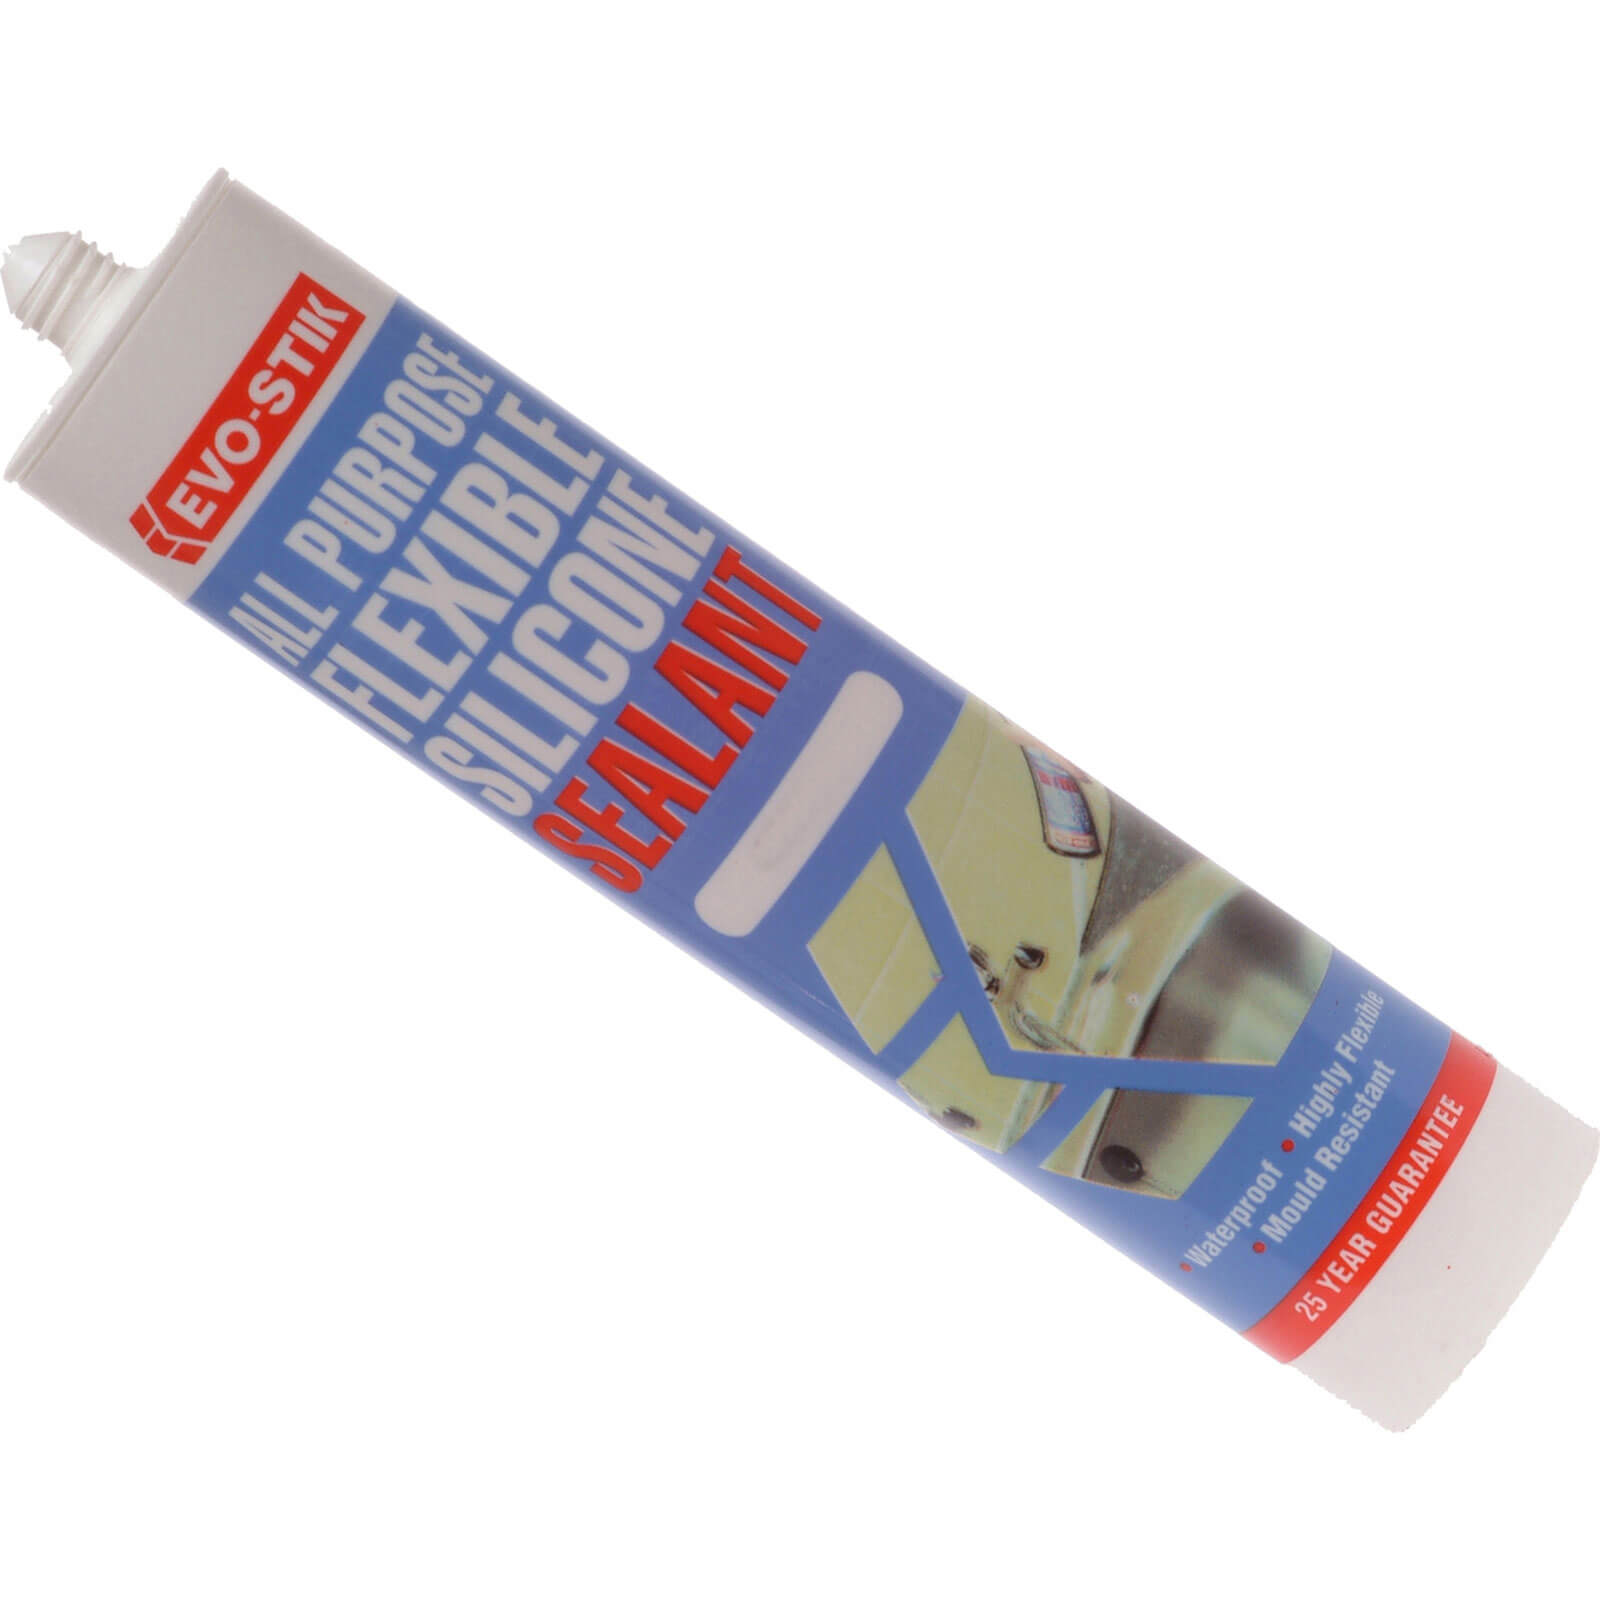 Image of Evostik All Purpose Flexible Silicone Sealant Clear 310ml